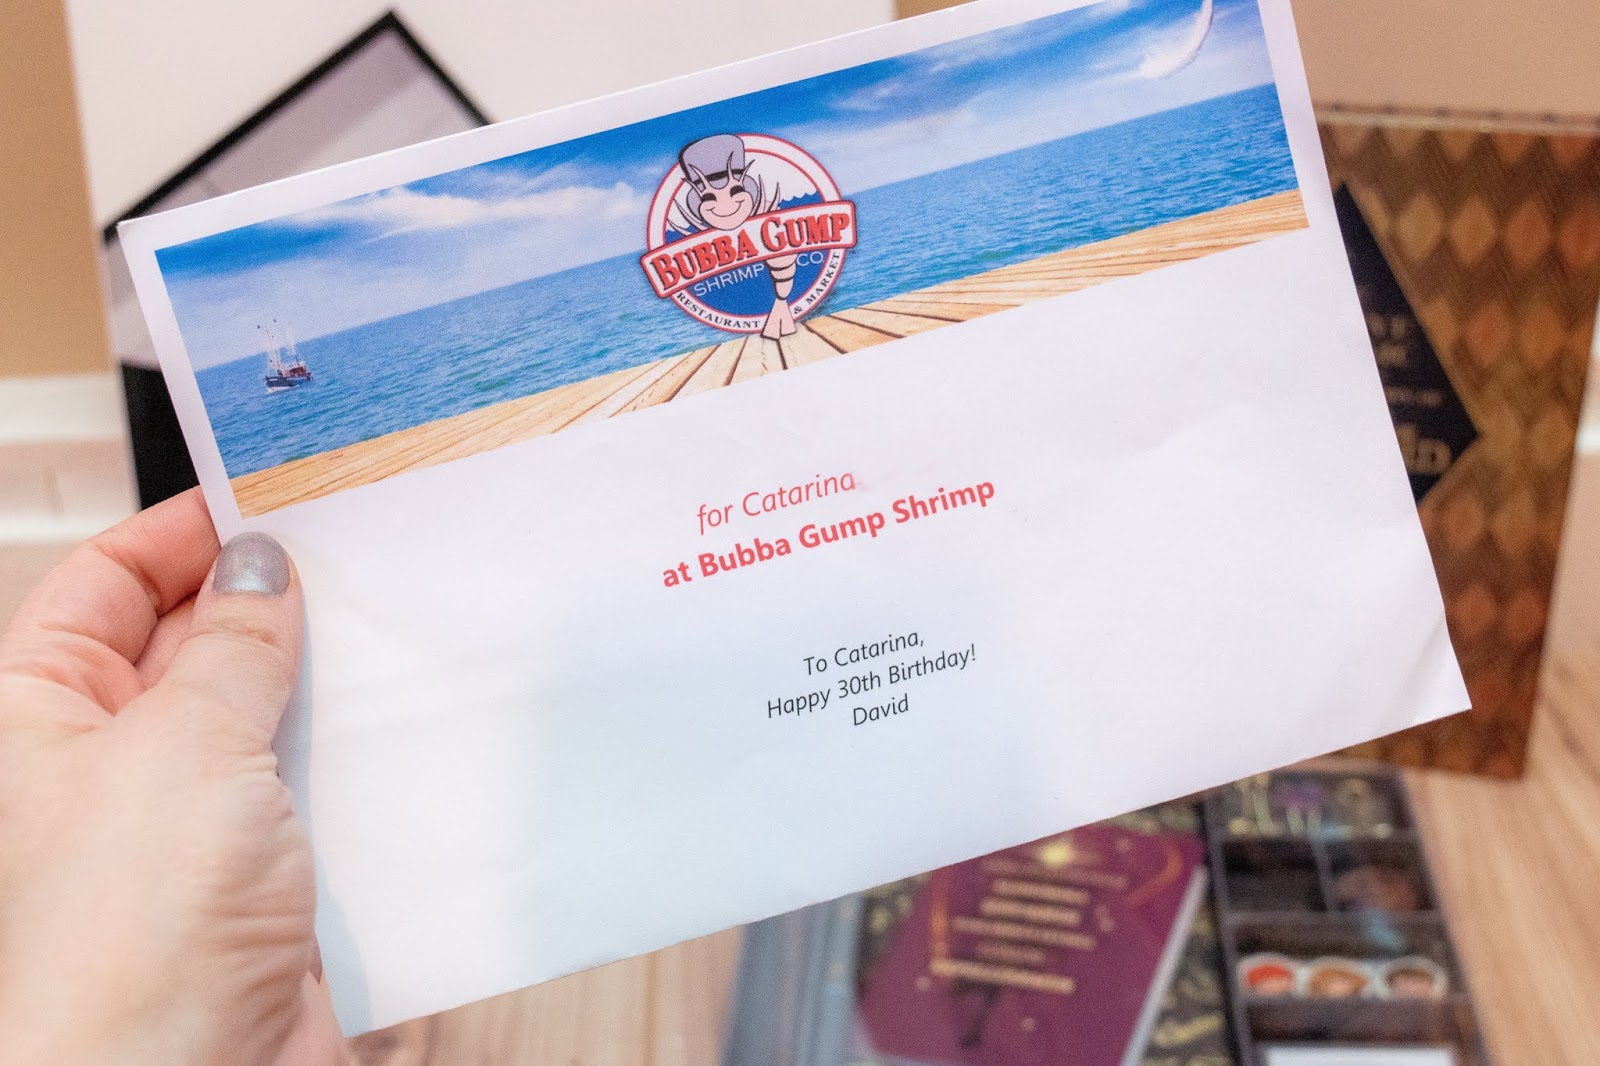 A voucher for Bubba Gump restaurant in London